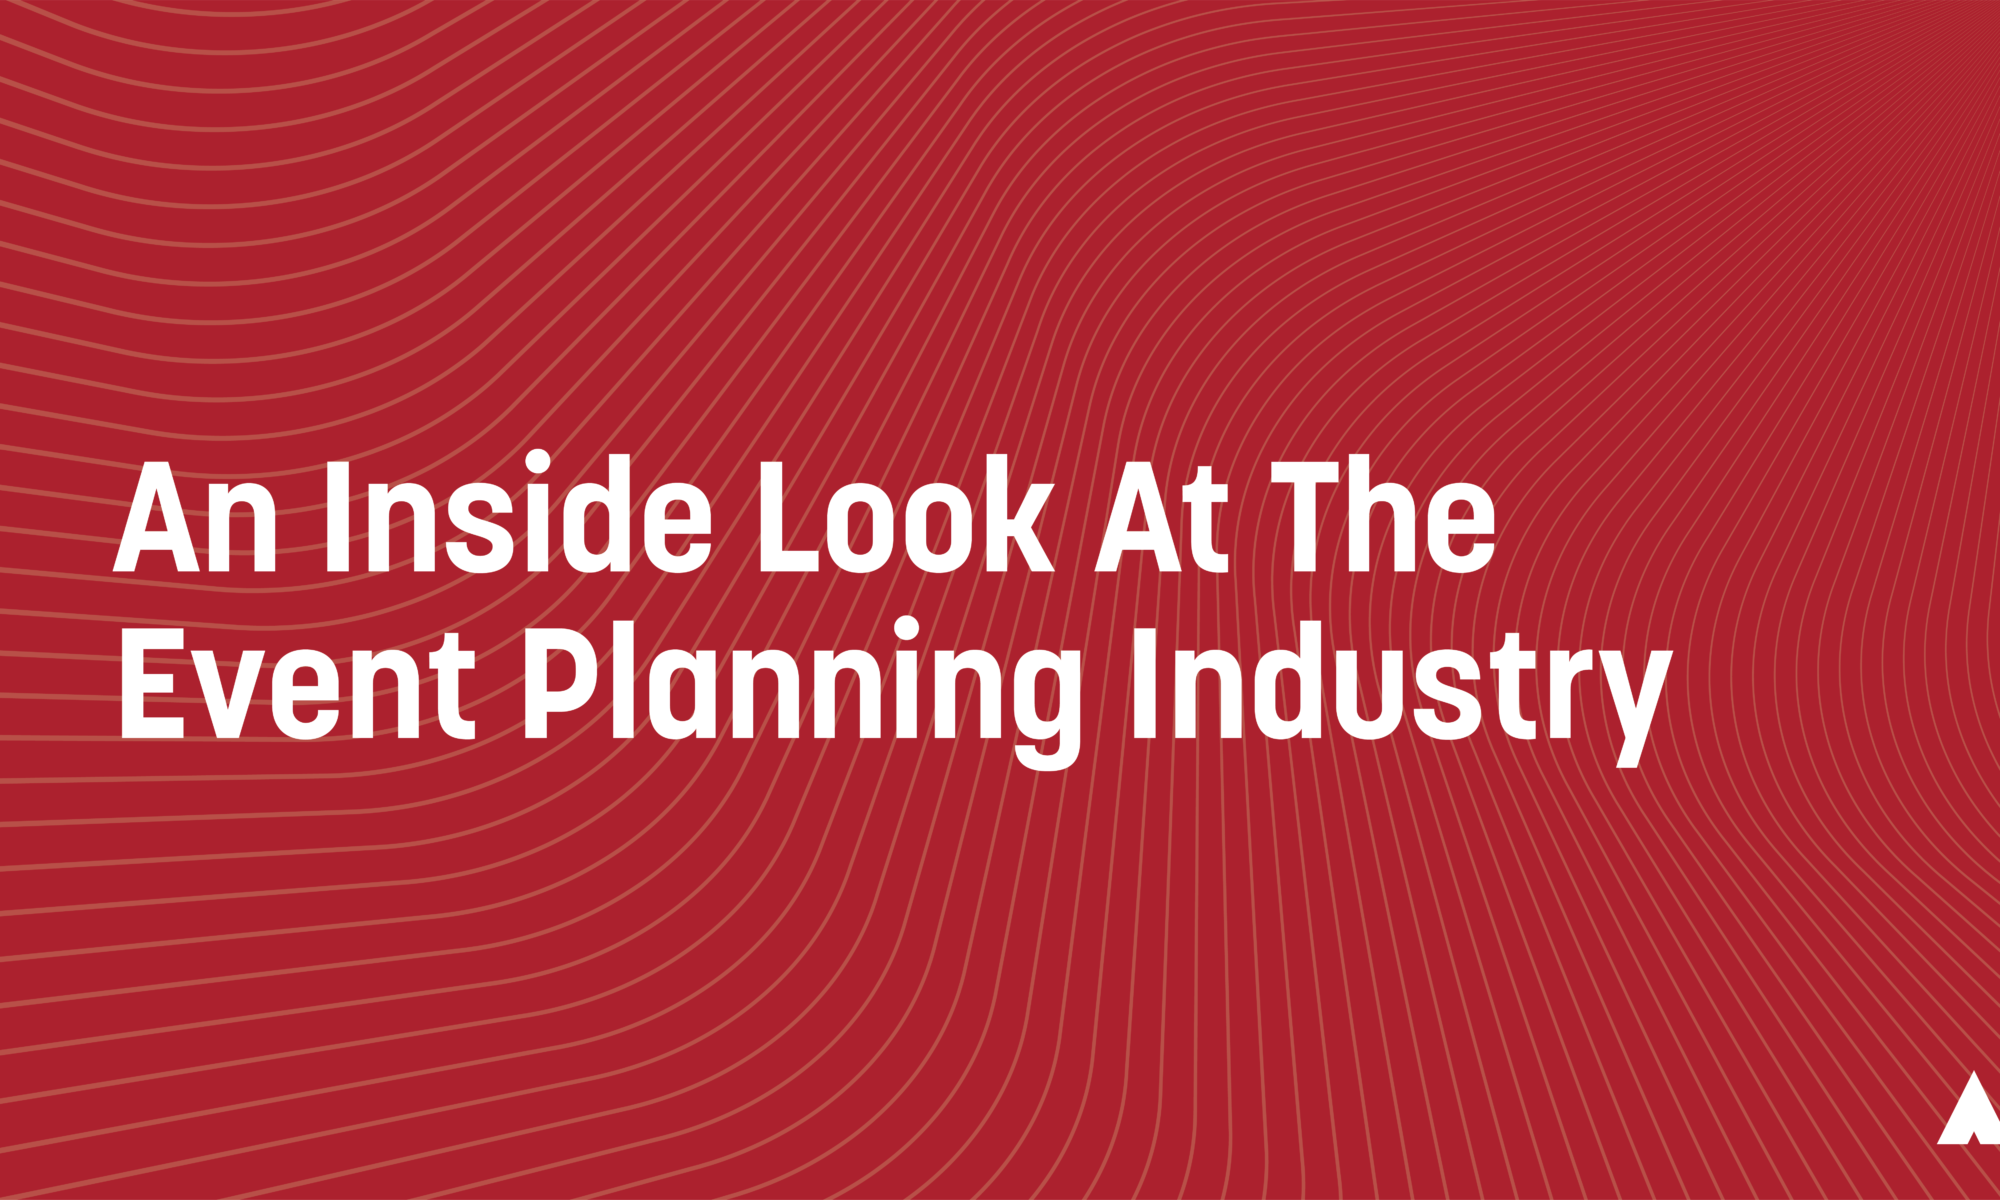 An Inside Look At The Event Planning Industry